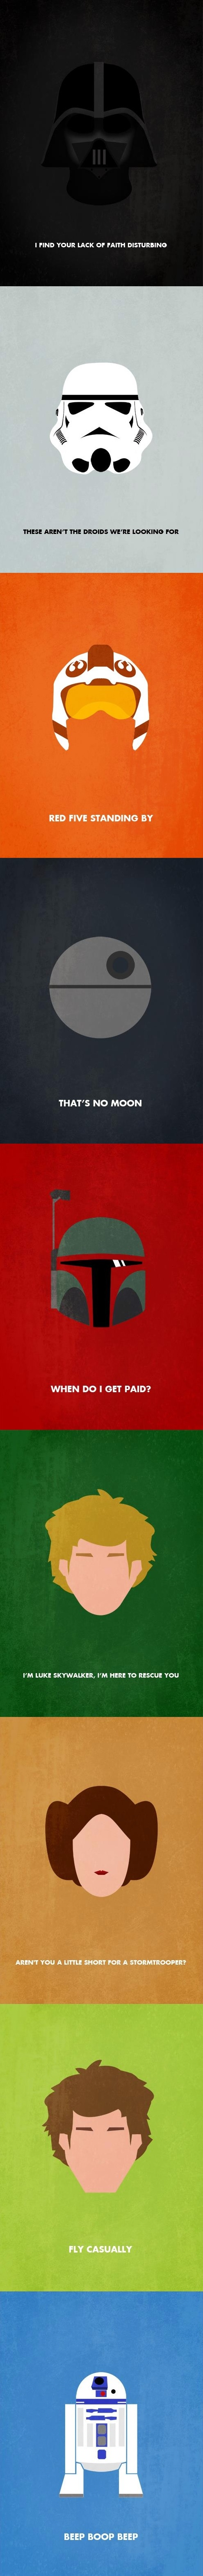 You Know its Star Wars When You Hear...